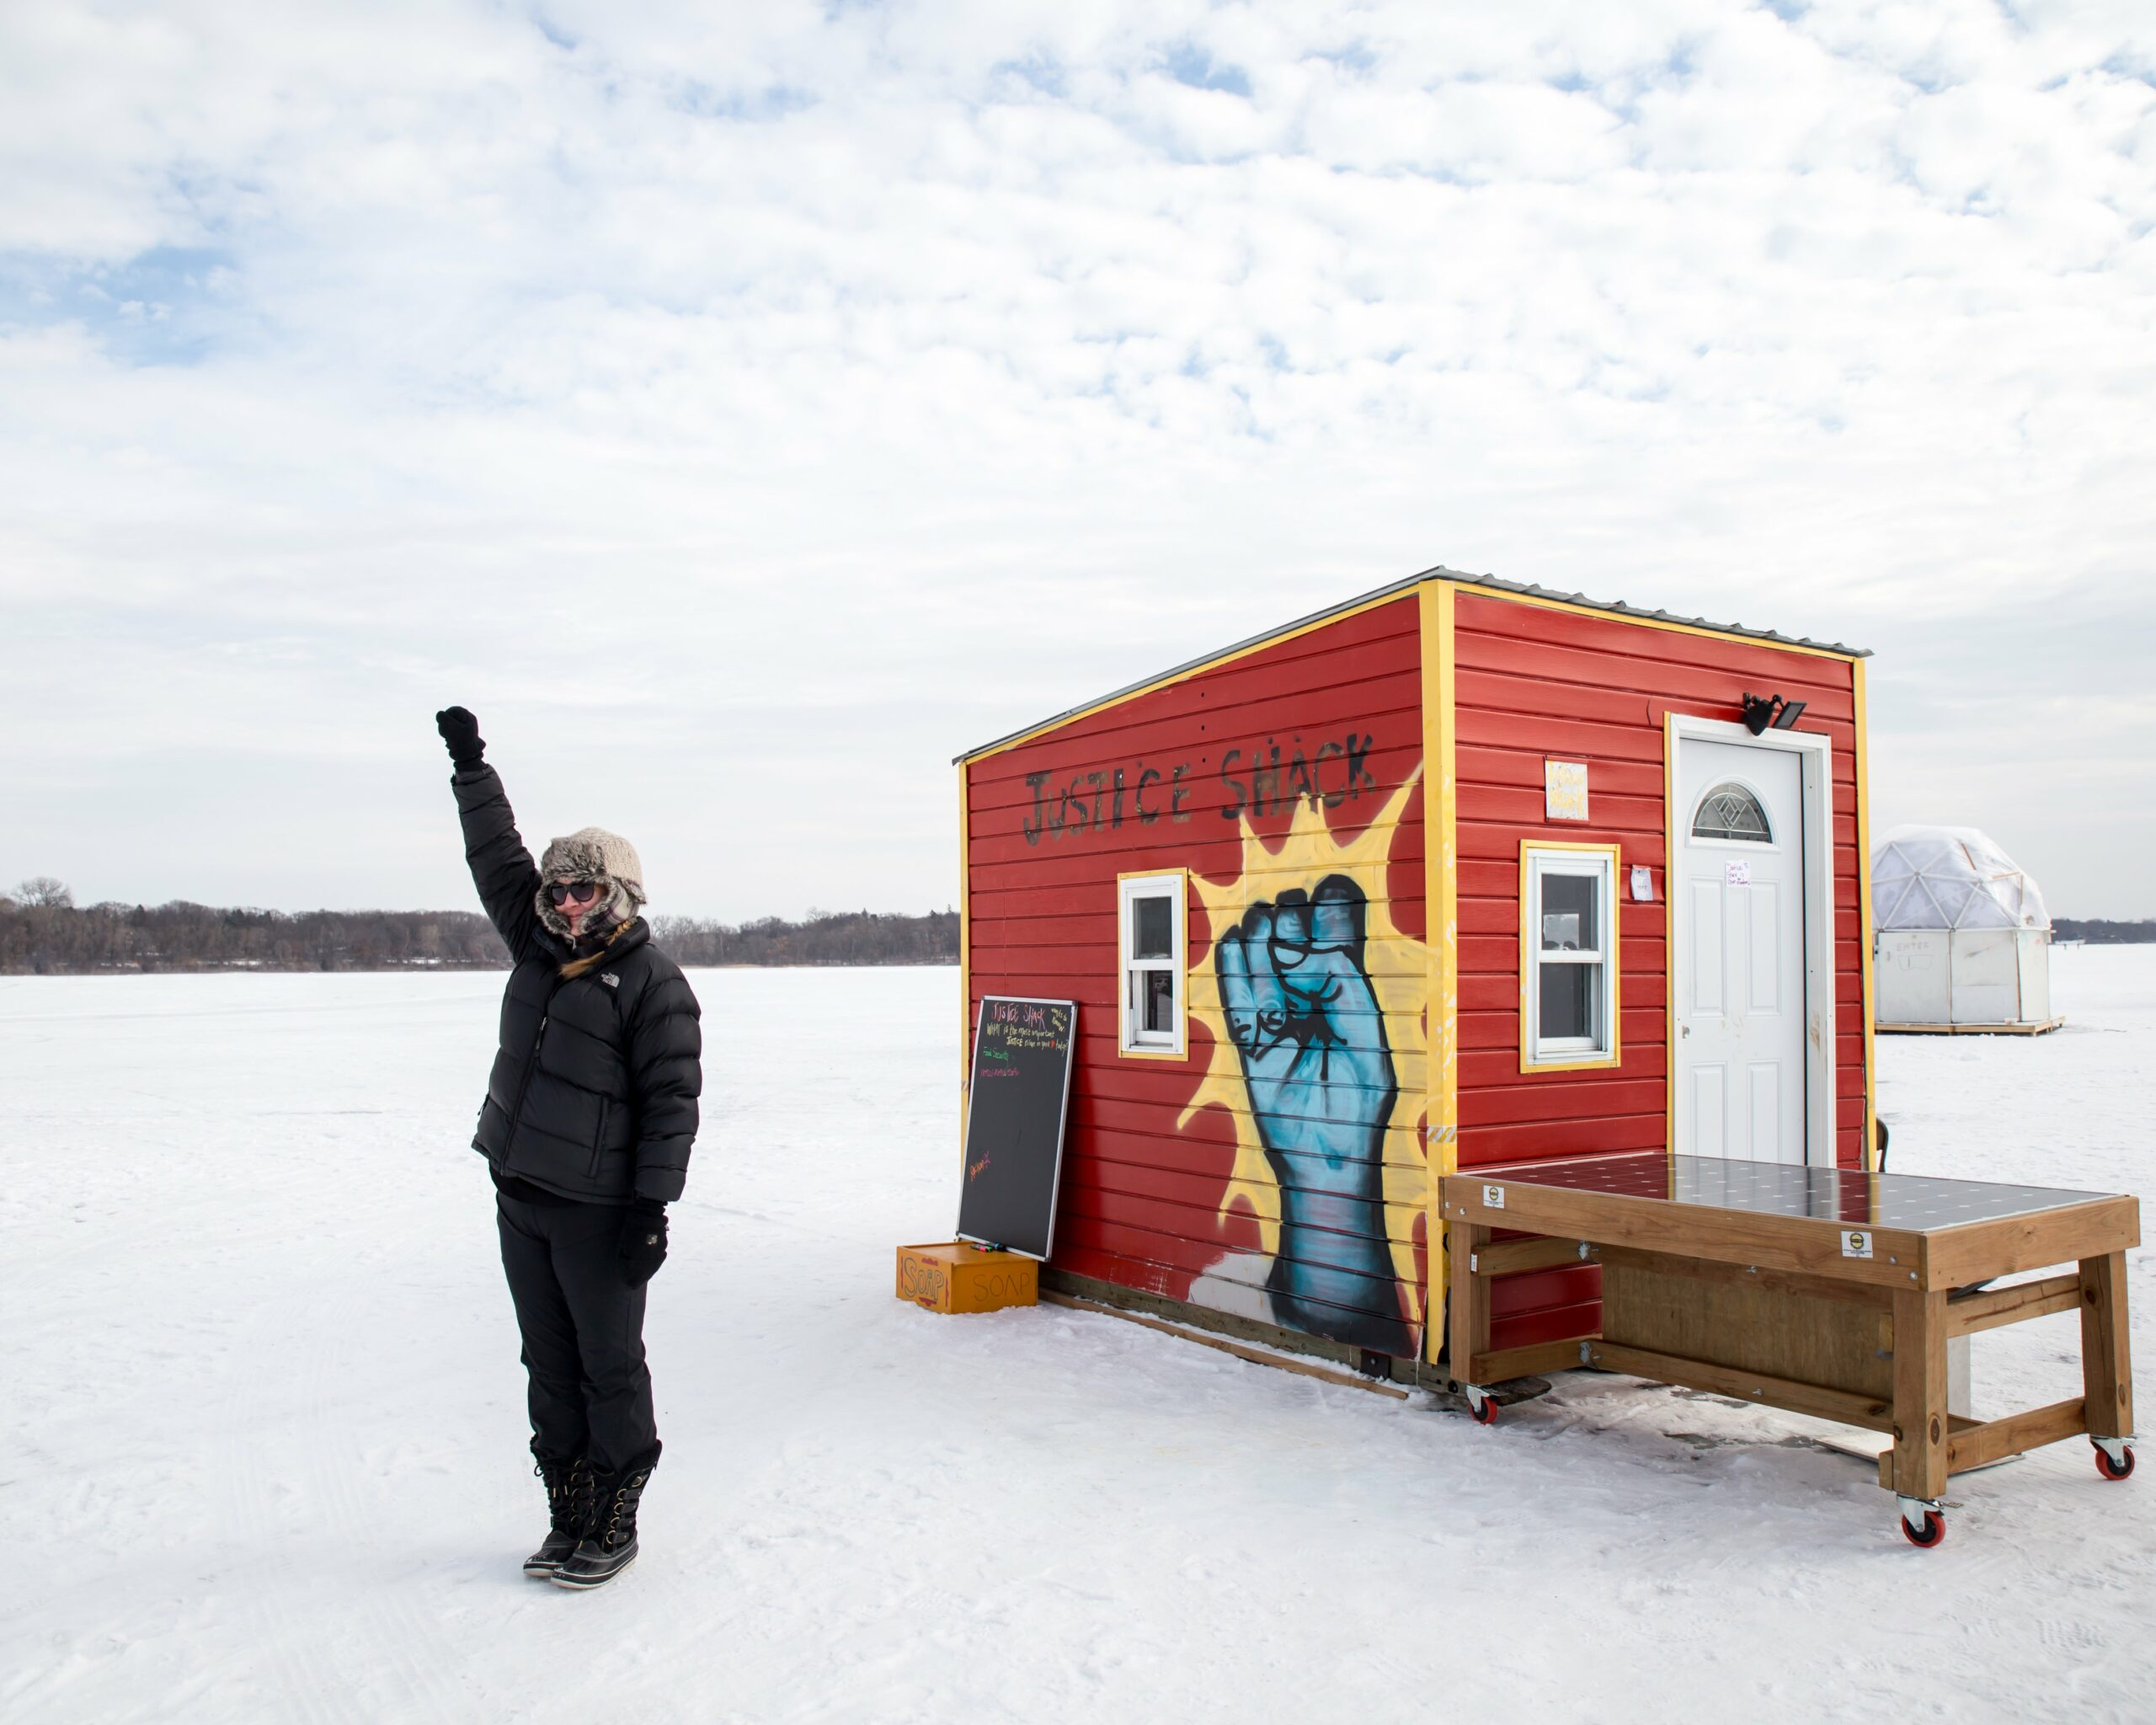 Justice Shack Minnesota Art Shanty Projects